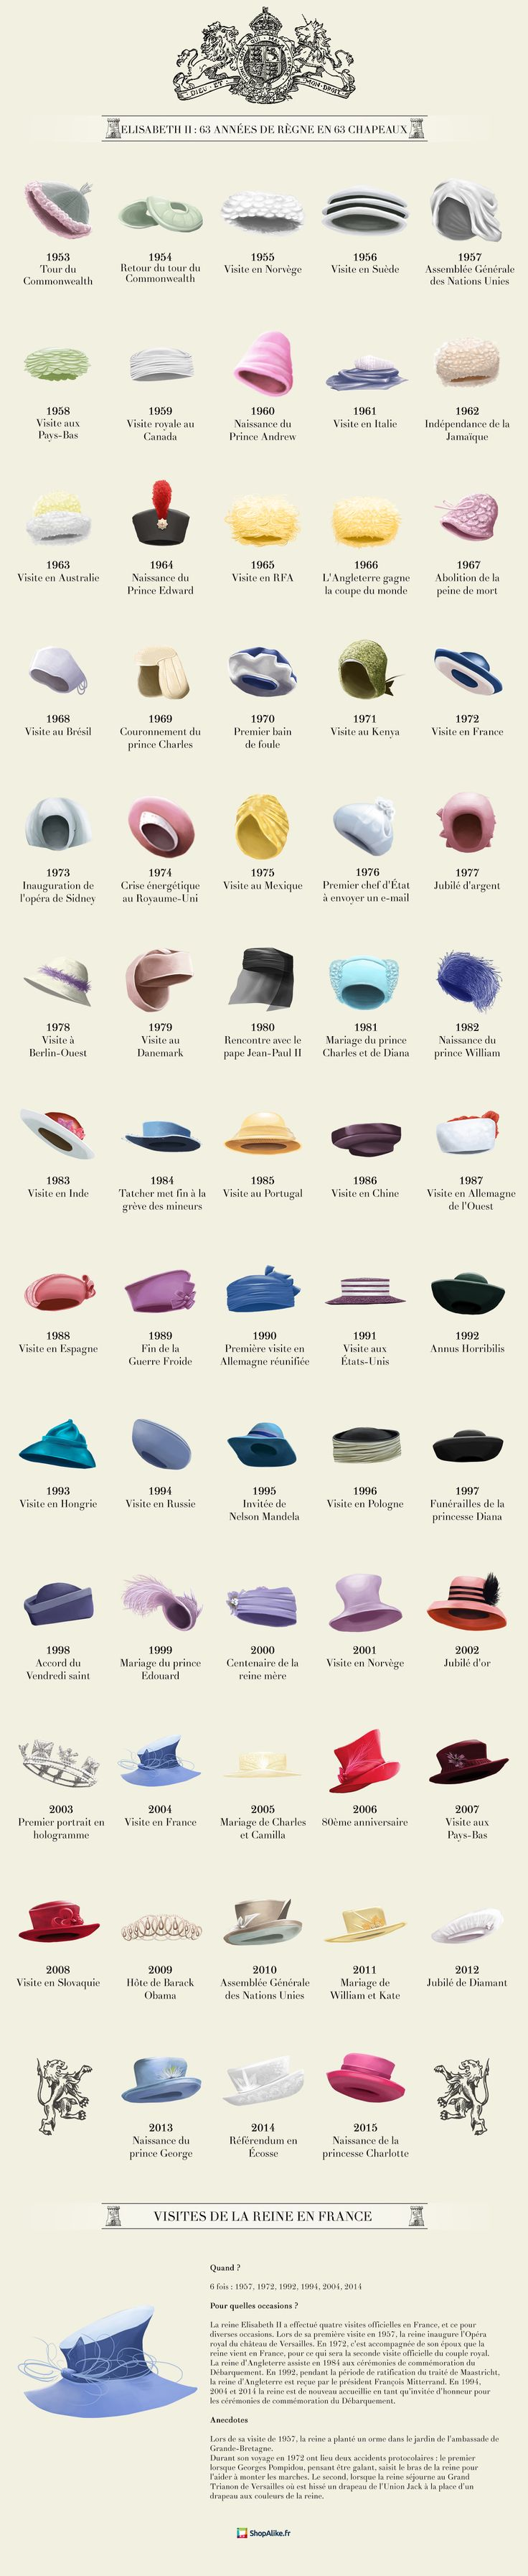 Queen Elizabeth's hats by year!